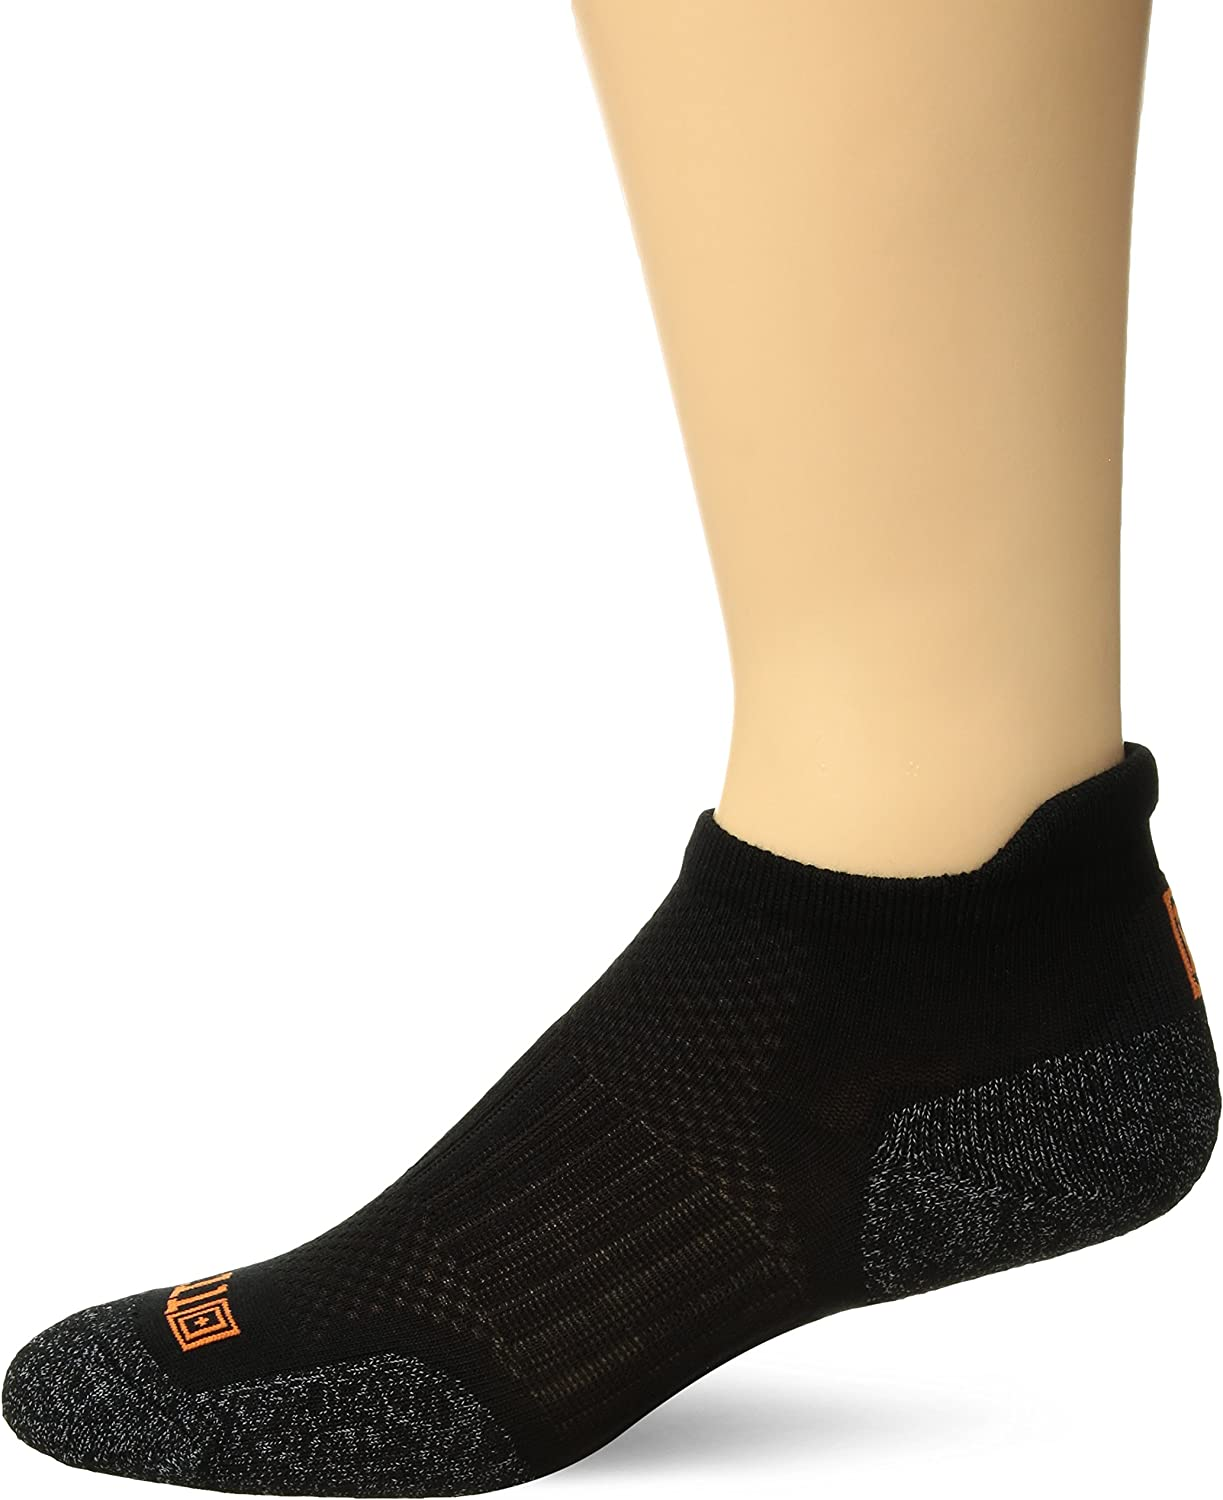 Unisex Sport Crew Compression Sock Moisture-Wicking 5.11 Tactical Style 10031 Unisex ABR Training